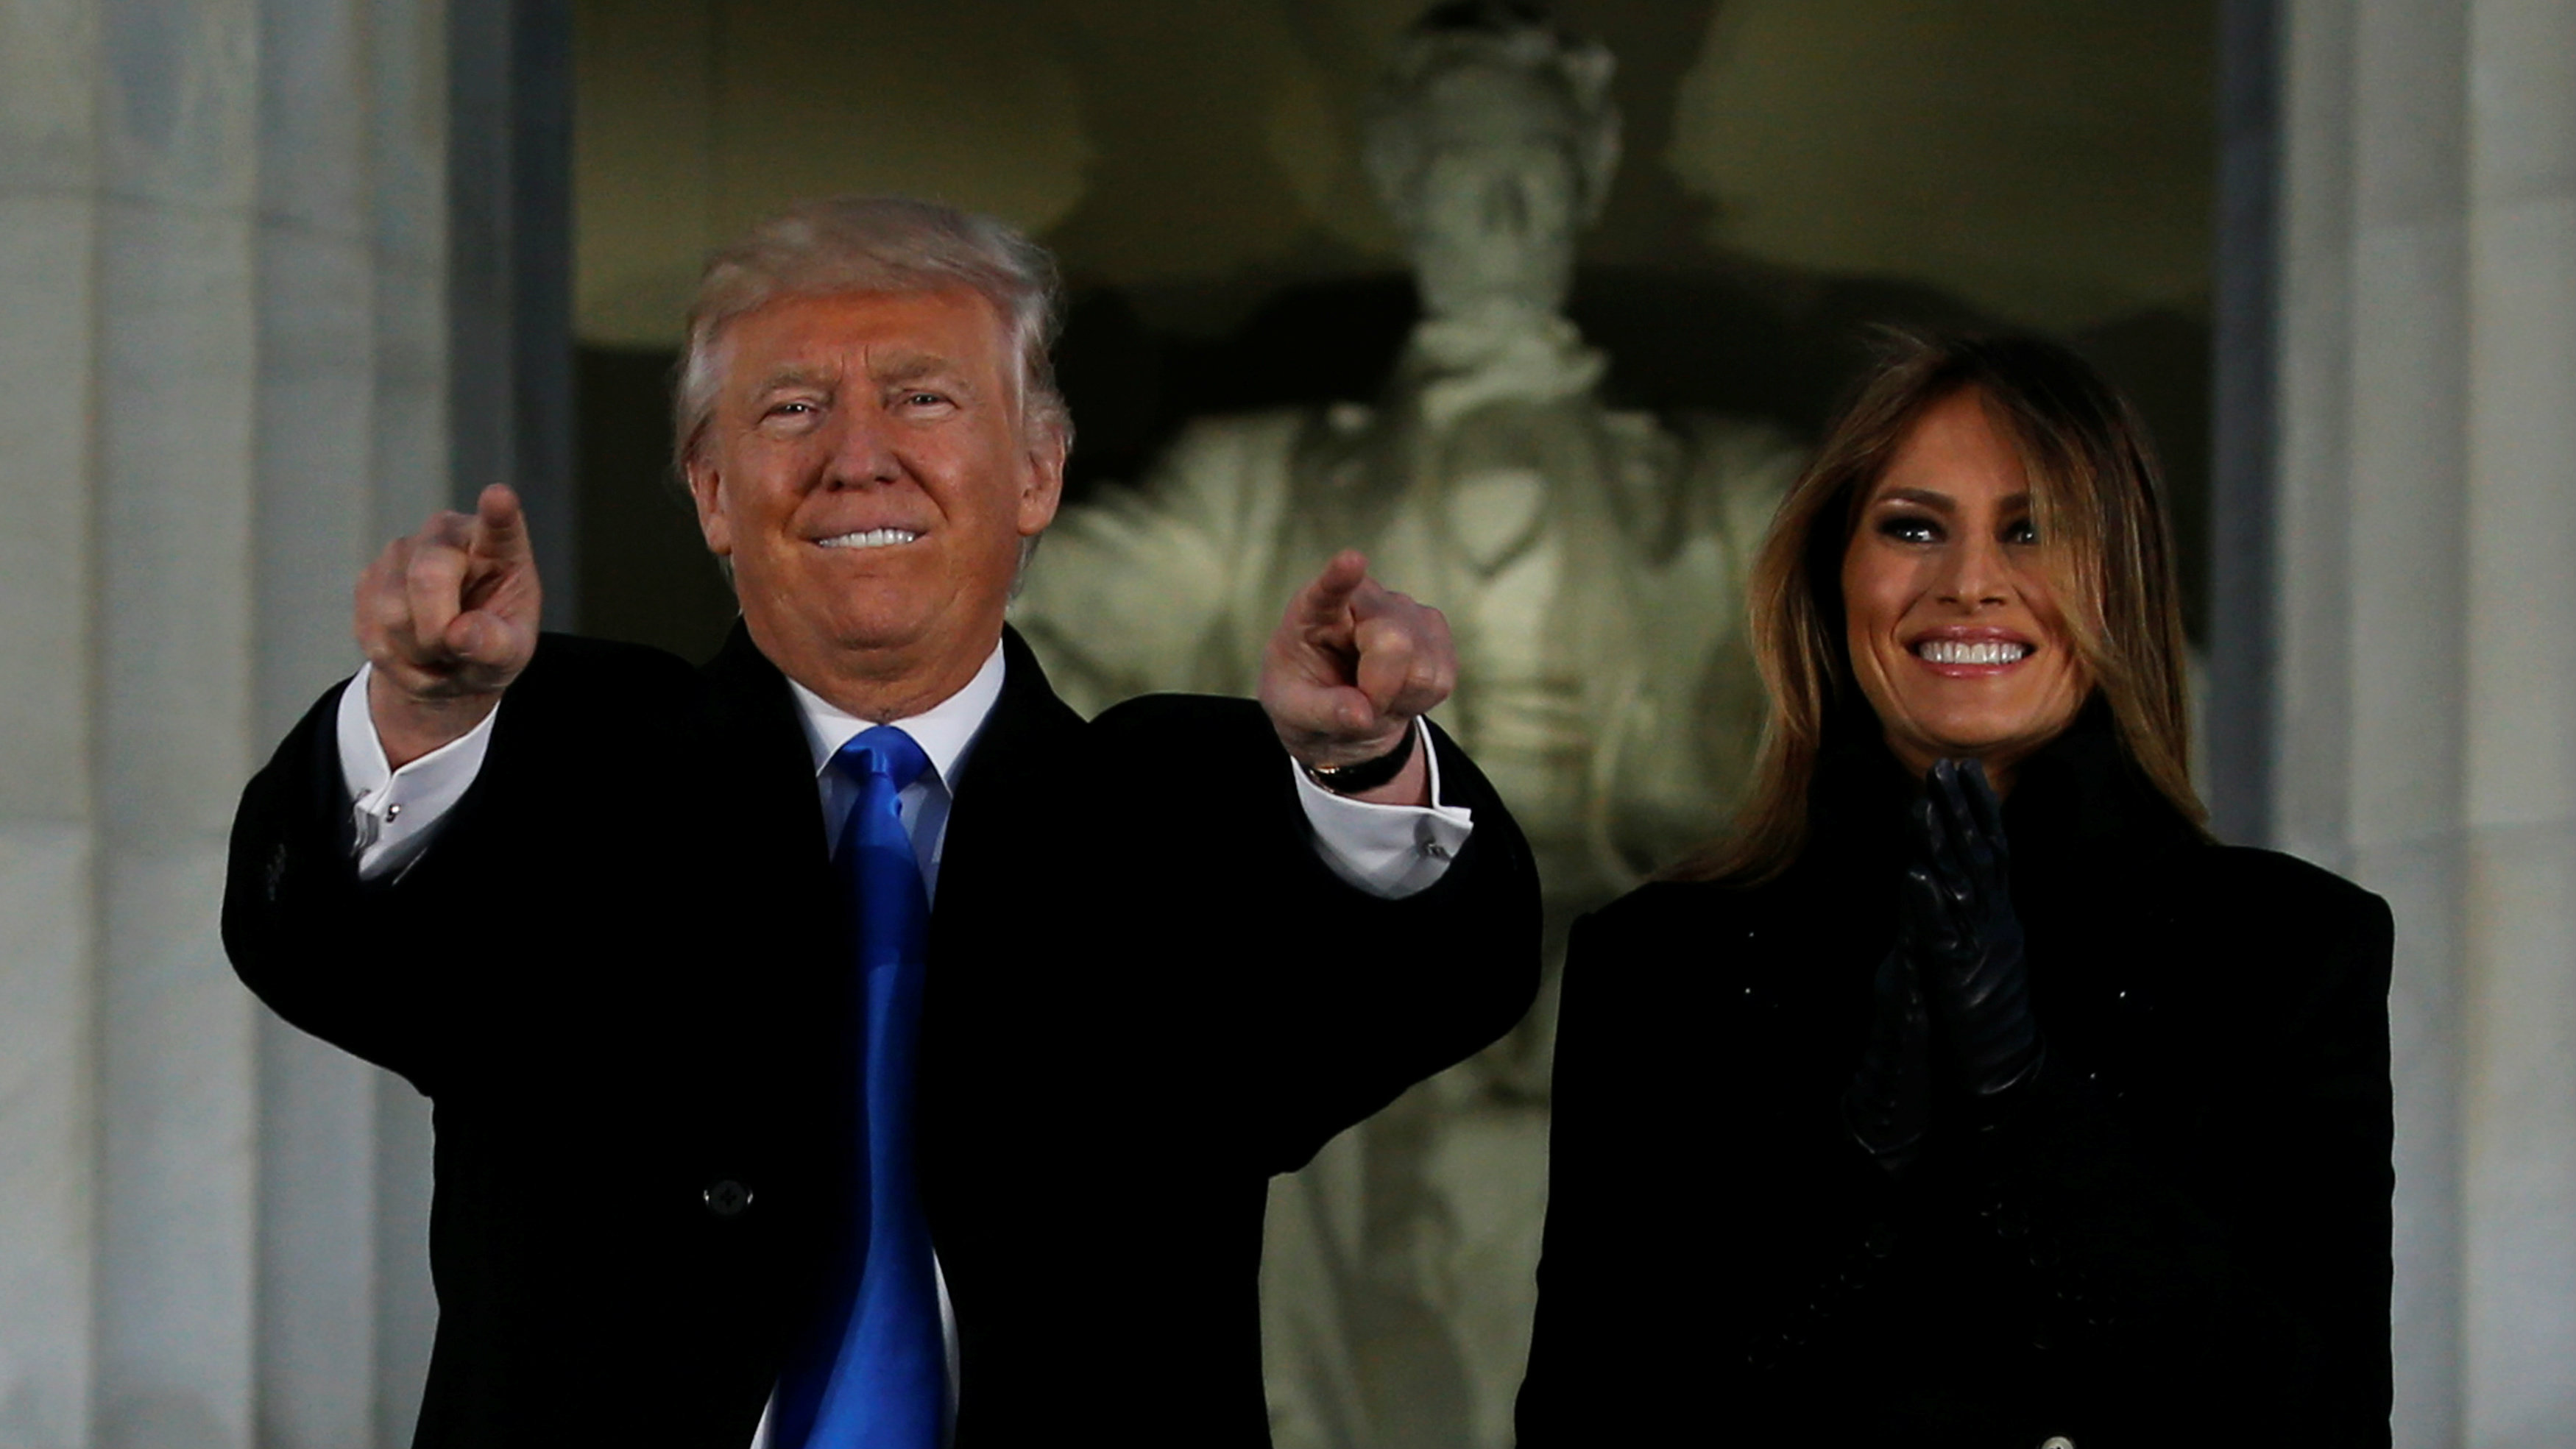 Donald and Melania Trump at Lincoln memorial concert